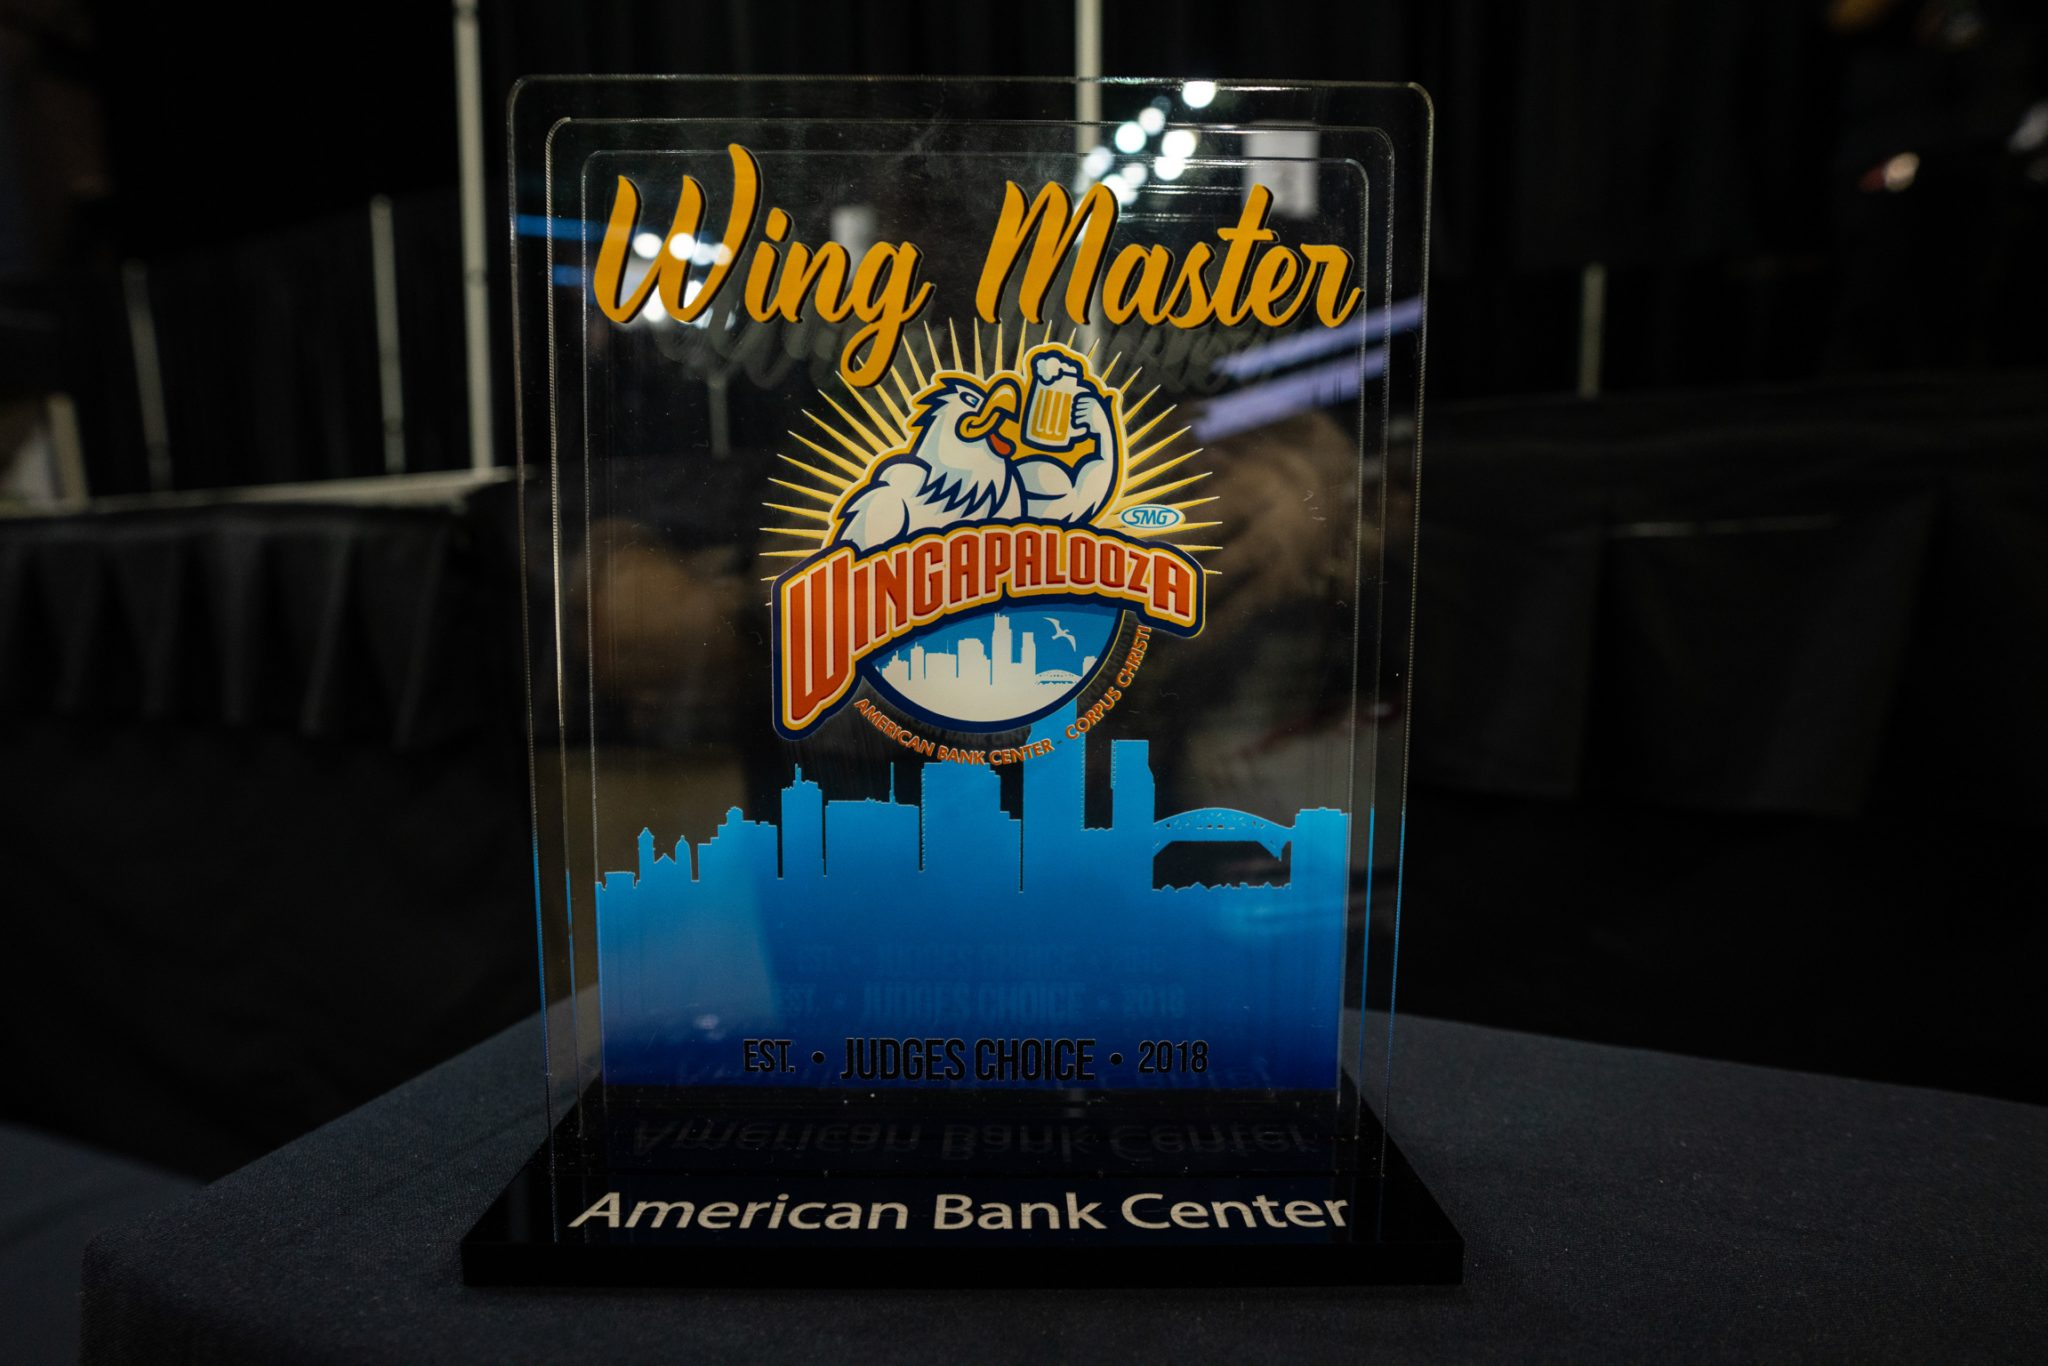 Wing master trophy